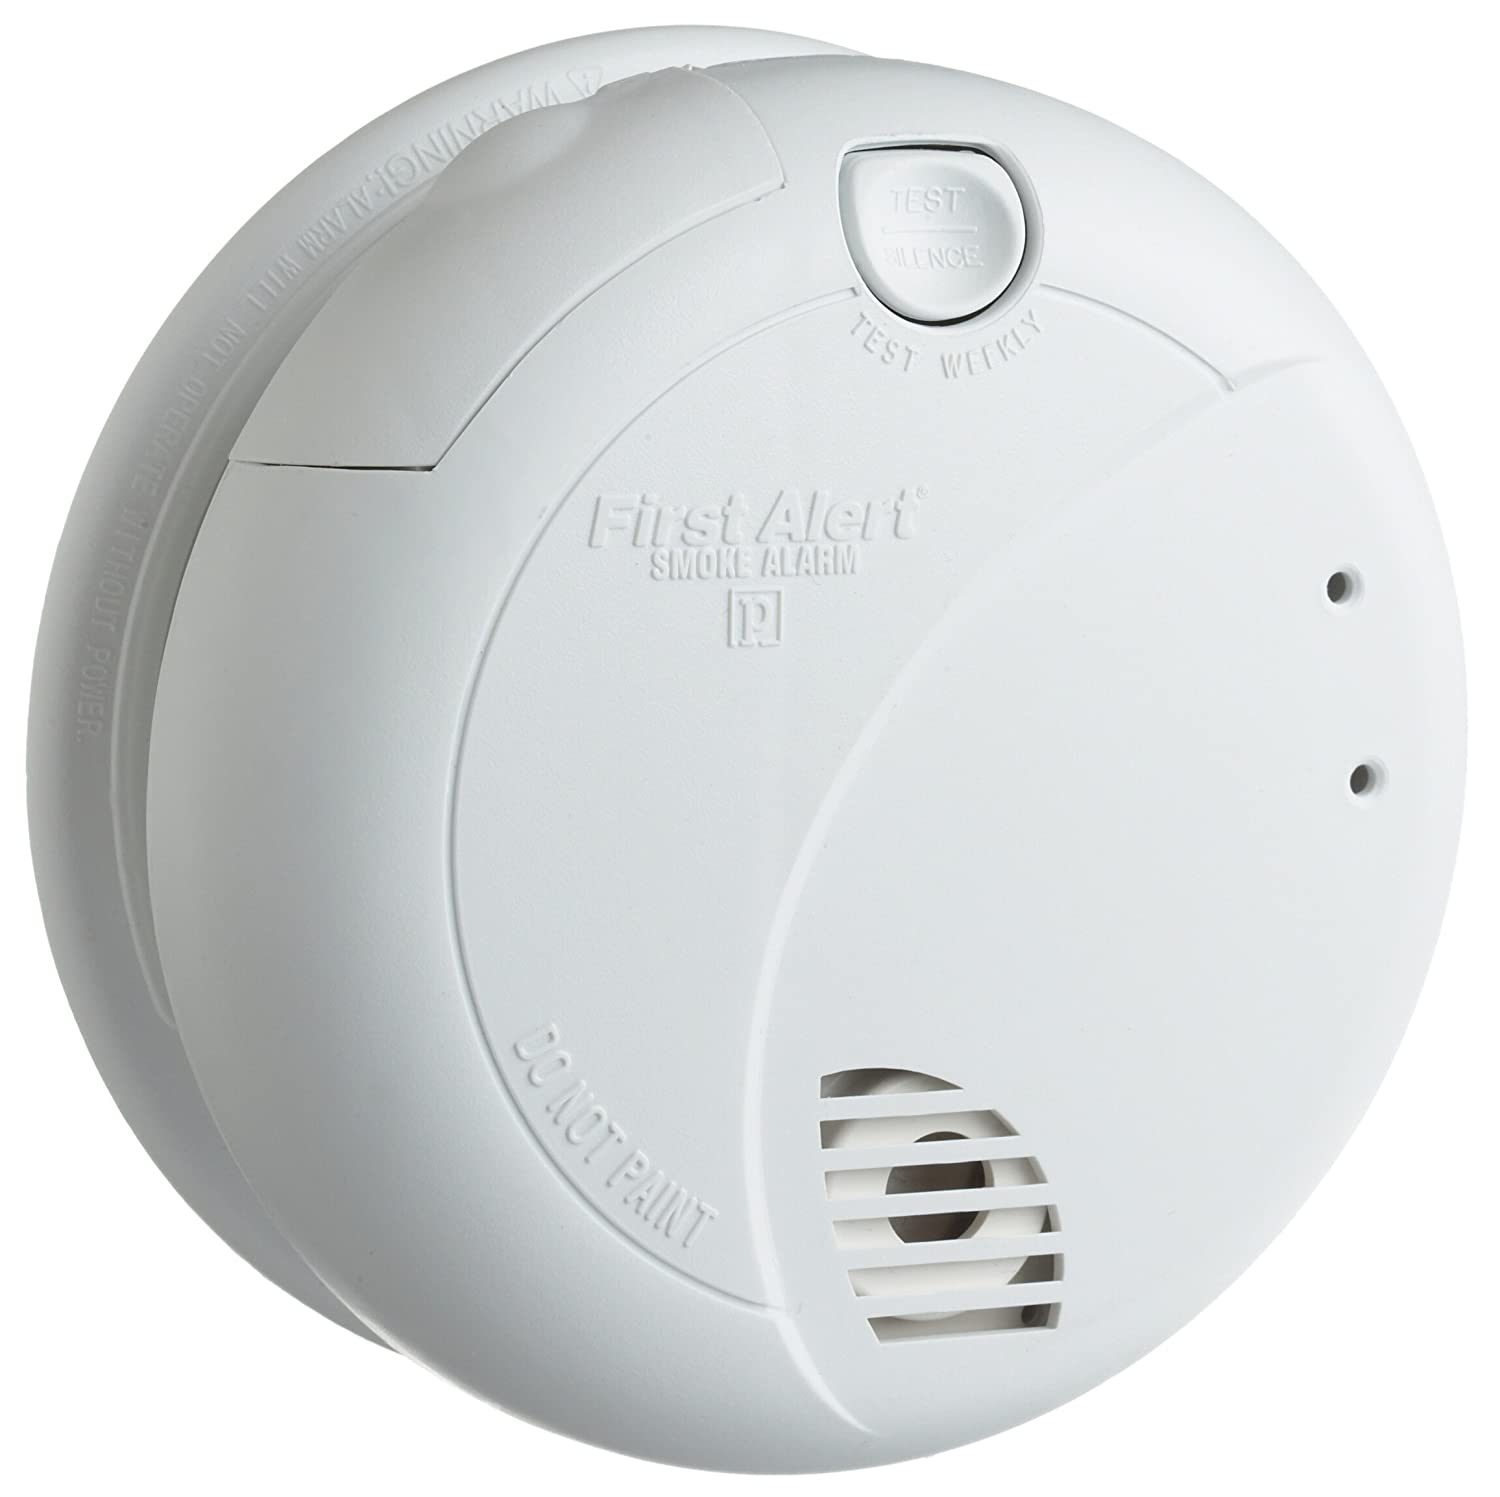 The Best Smoke Alarms Reviews Comparisons Of Top Rated Photoelectric Sensor Wiring Diagram Compact This Hardwired Detector Features Sensing Technology And A Loud 85 Db Alarm To Help Alert You Your Family Potential Dangers